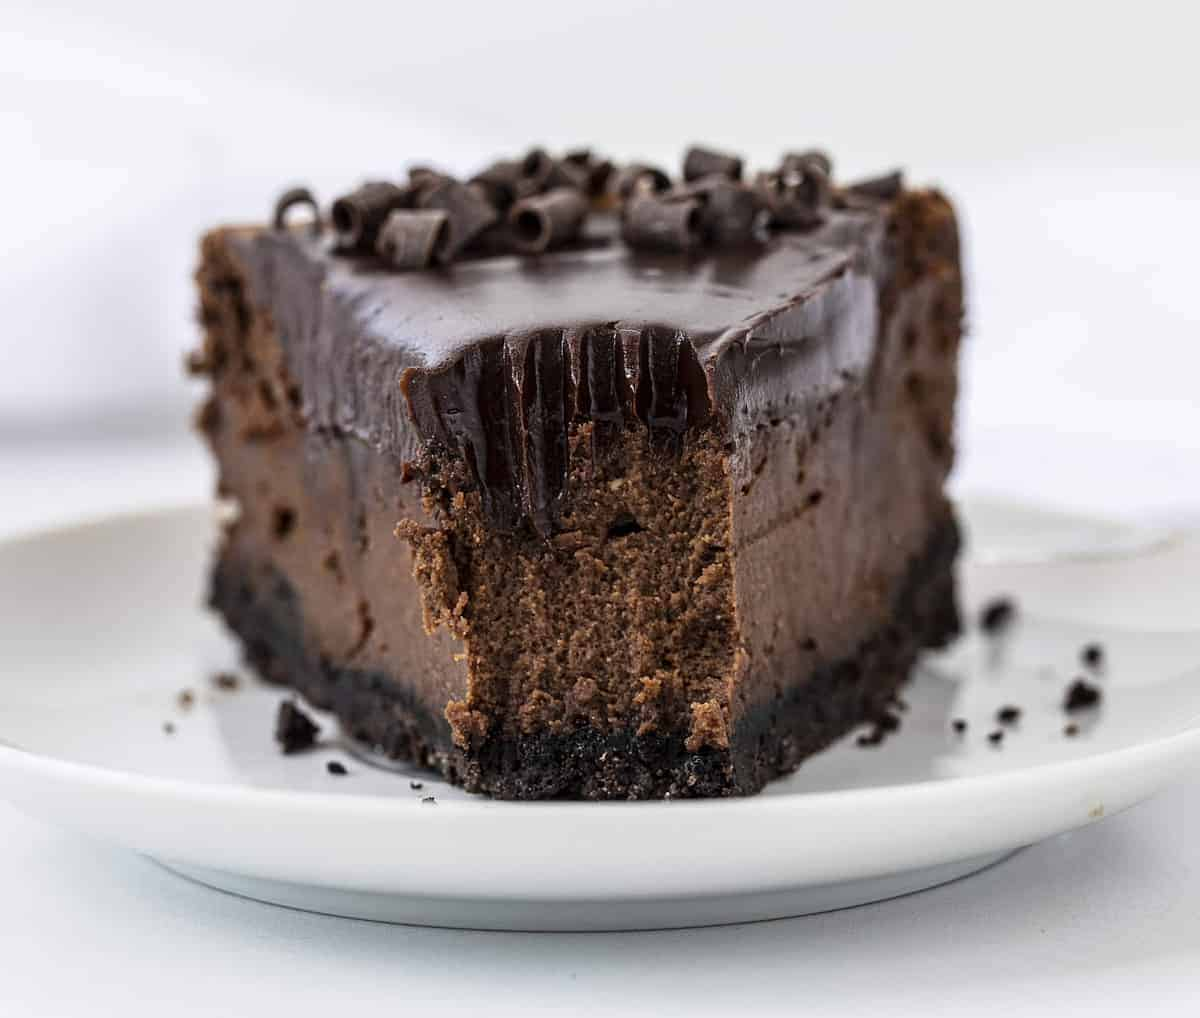 One Slice of Chocolate Cheesecake with the tip removed showing the inside